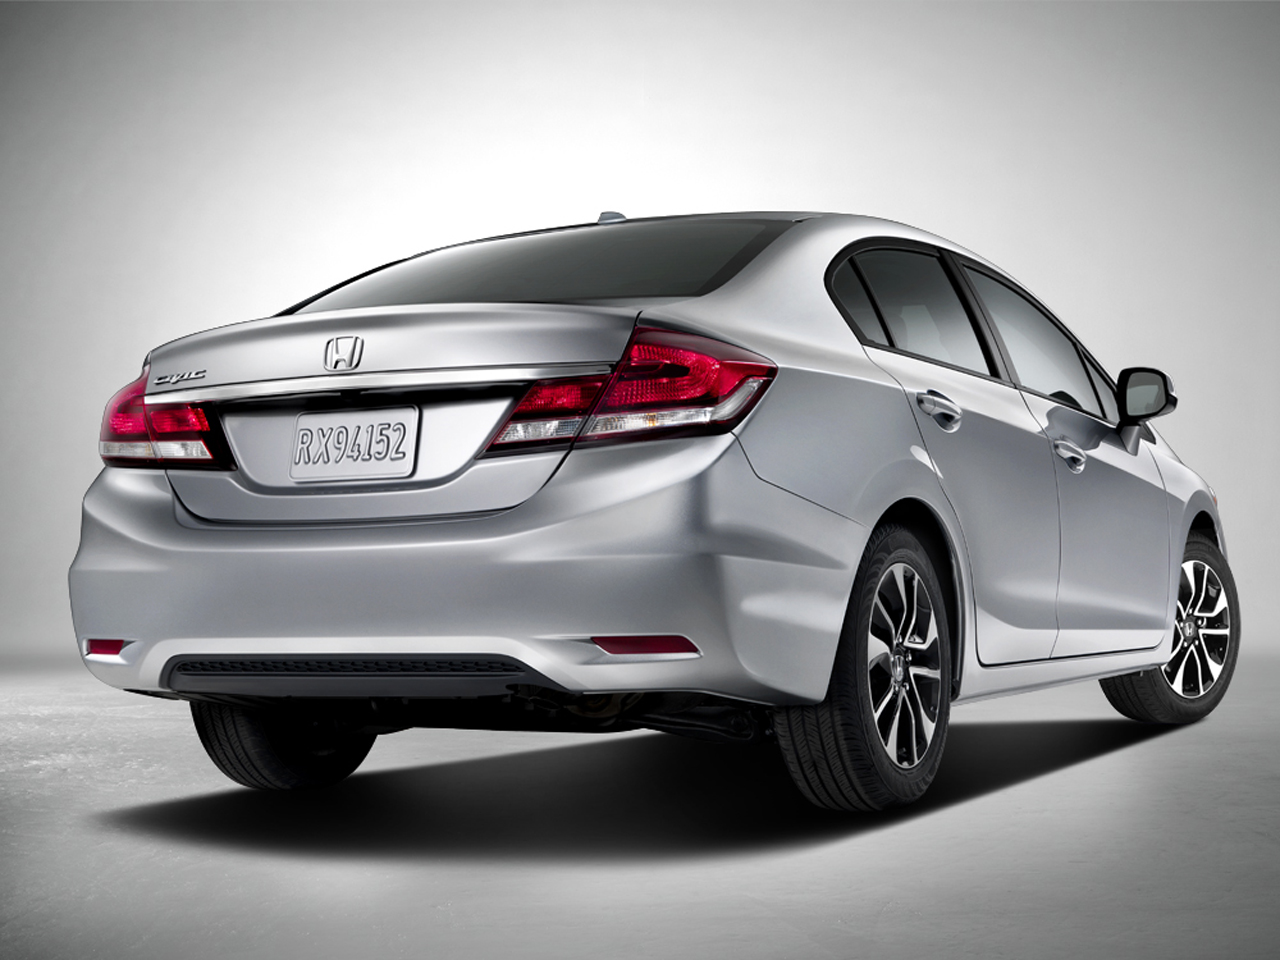 2013 Honda Civic Photo Gallery - Autoblog